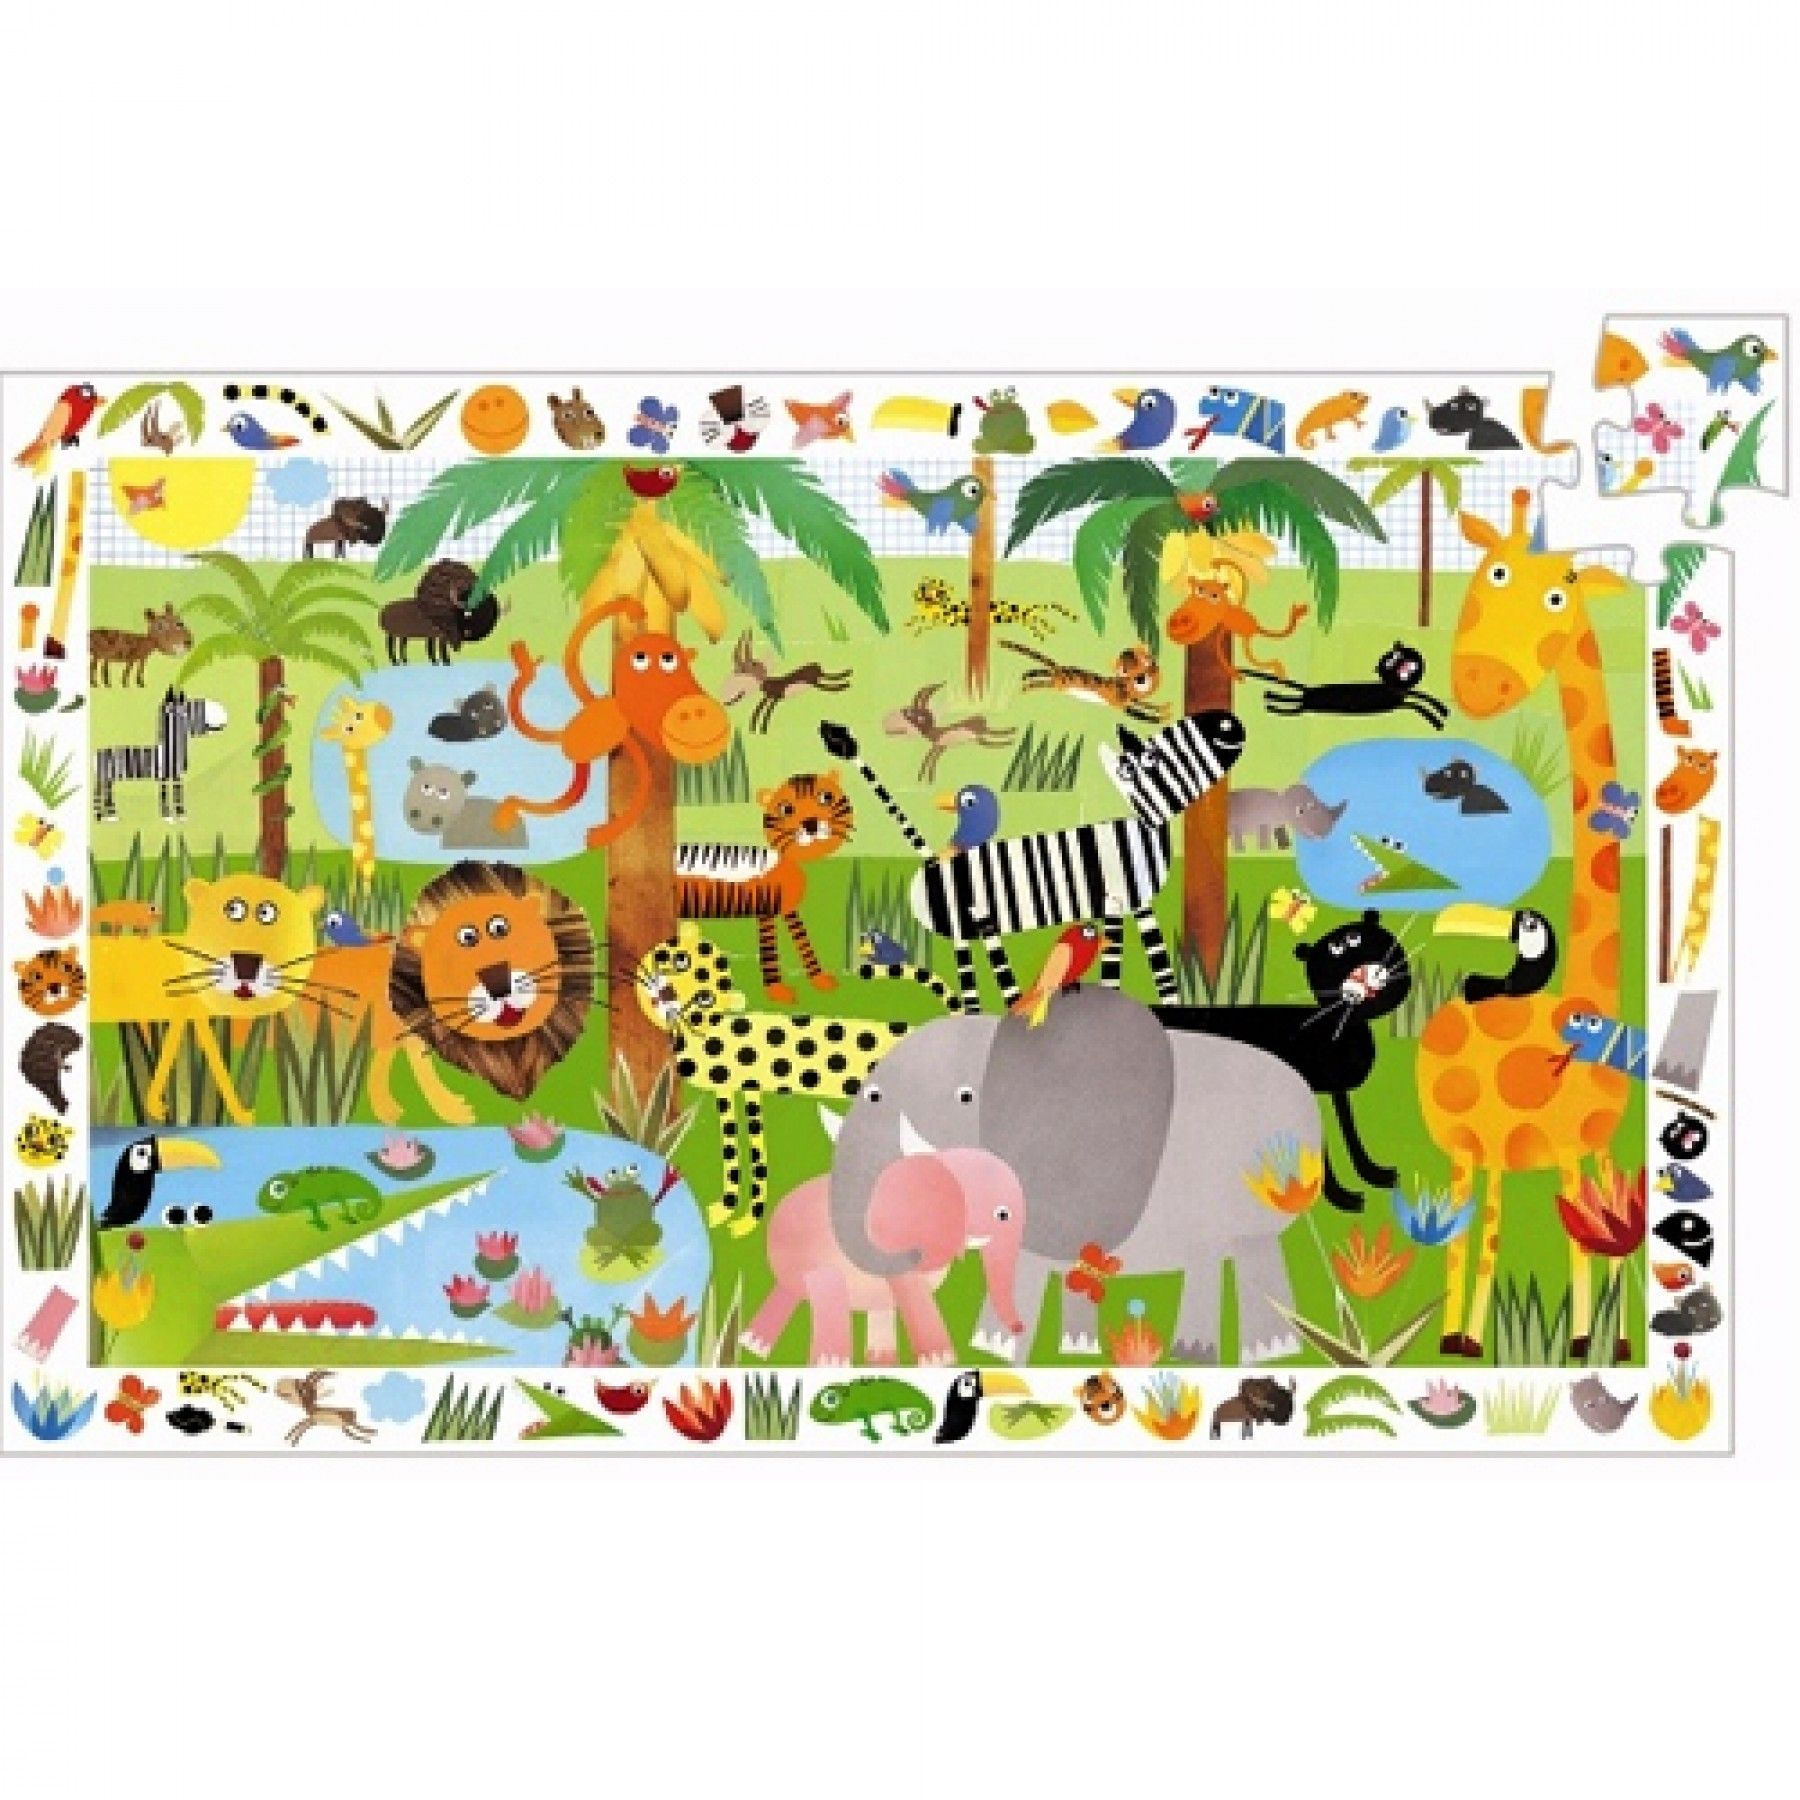 djeco puzzel observation jungle (35st) | ilovespeelgoed.nl